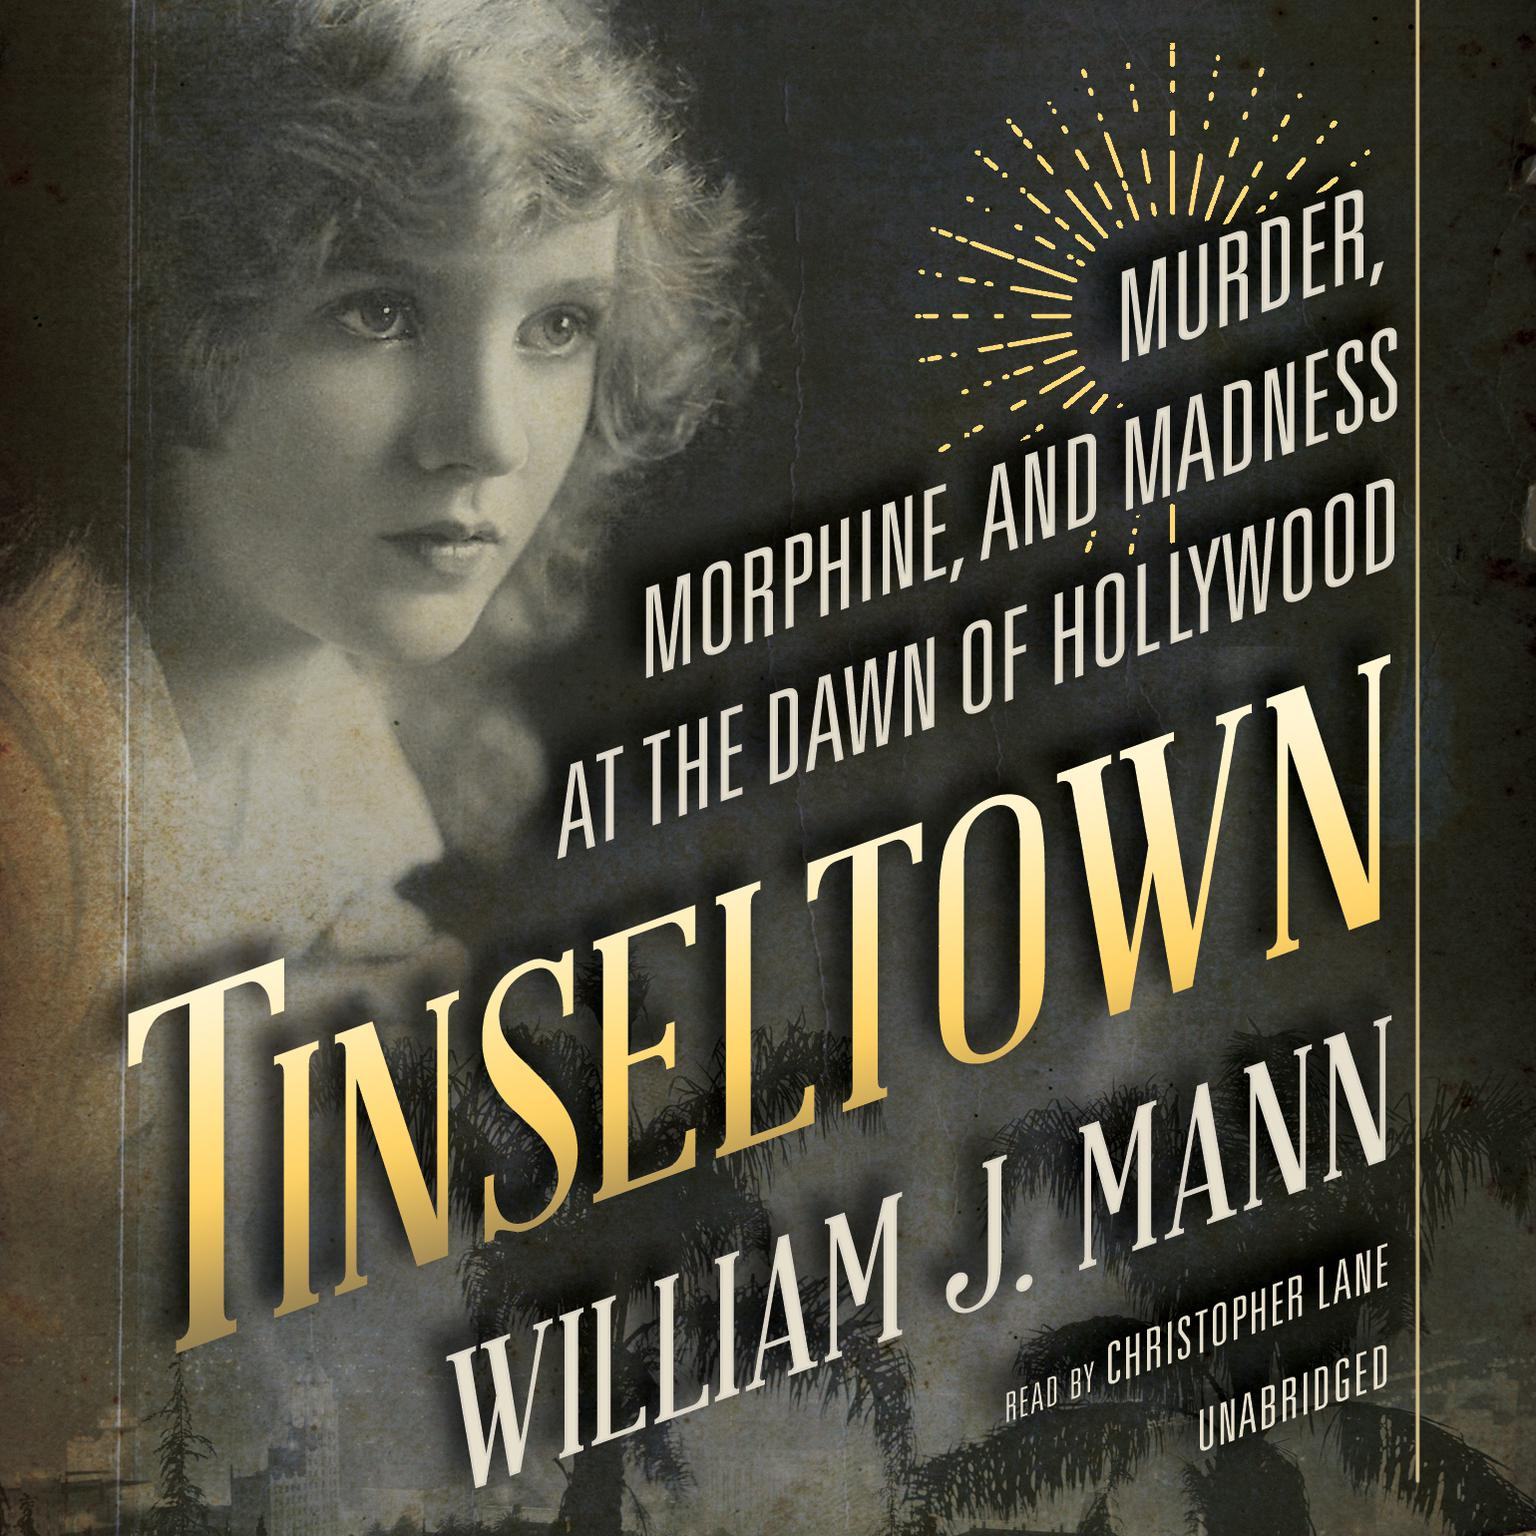 Printable Tinseltown: Murder, Morphine, and Madness at the Dawn of Hollywood Audiobook Cover Art